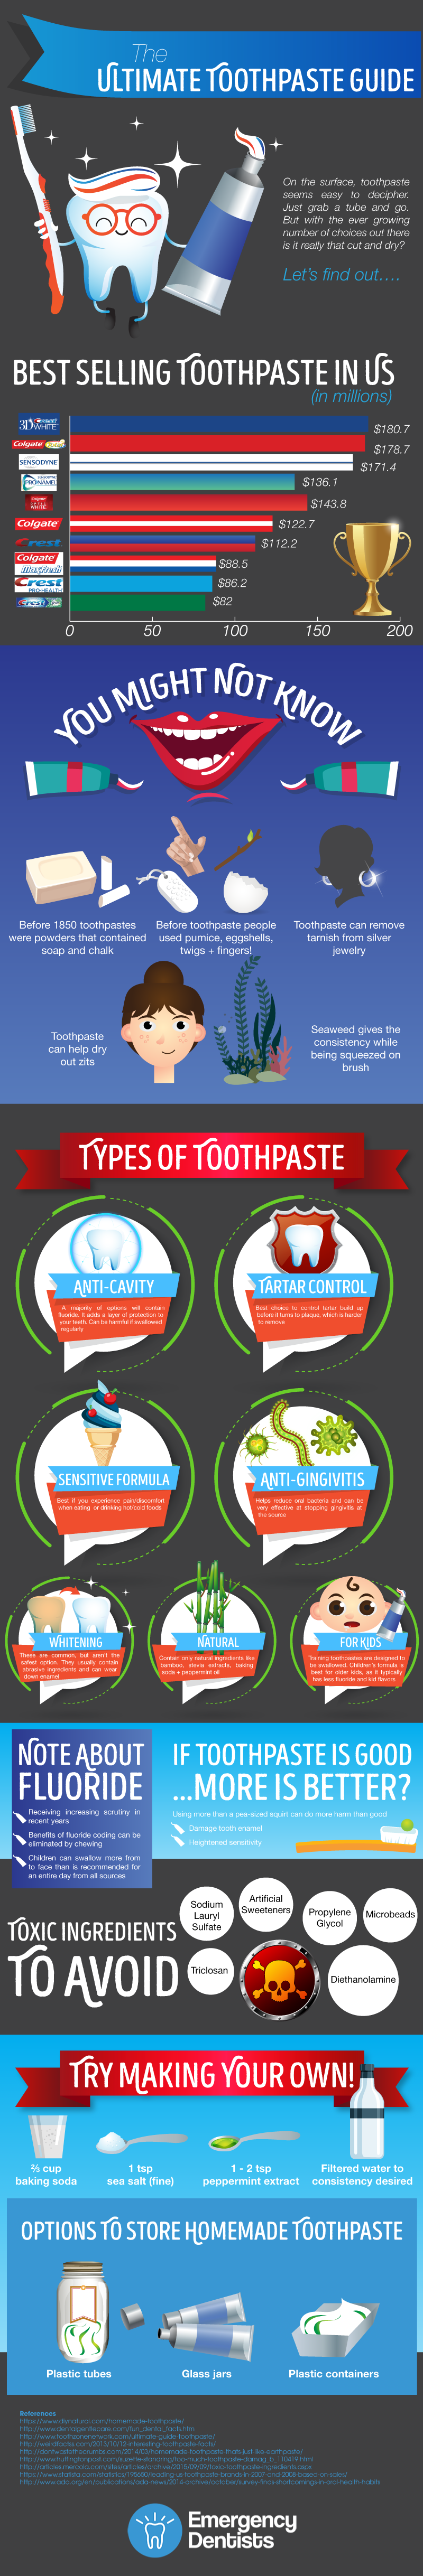 Toothpaste clipart healthy smile. Ultimate guide all you